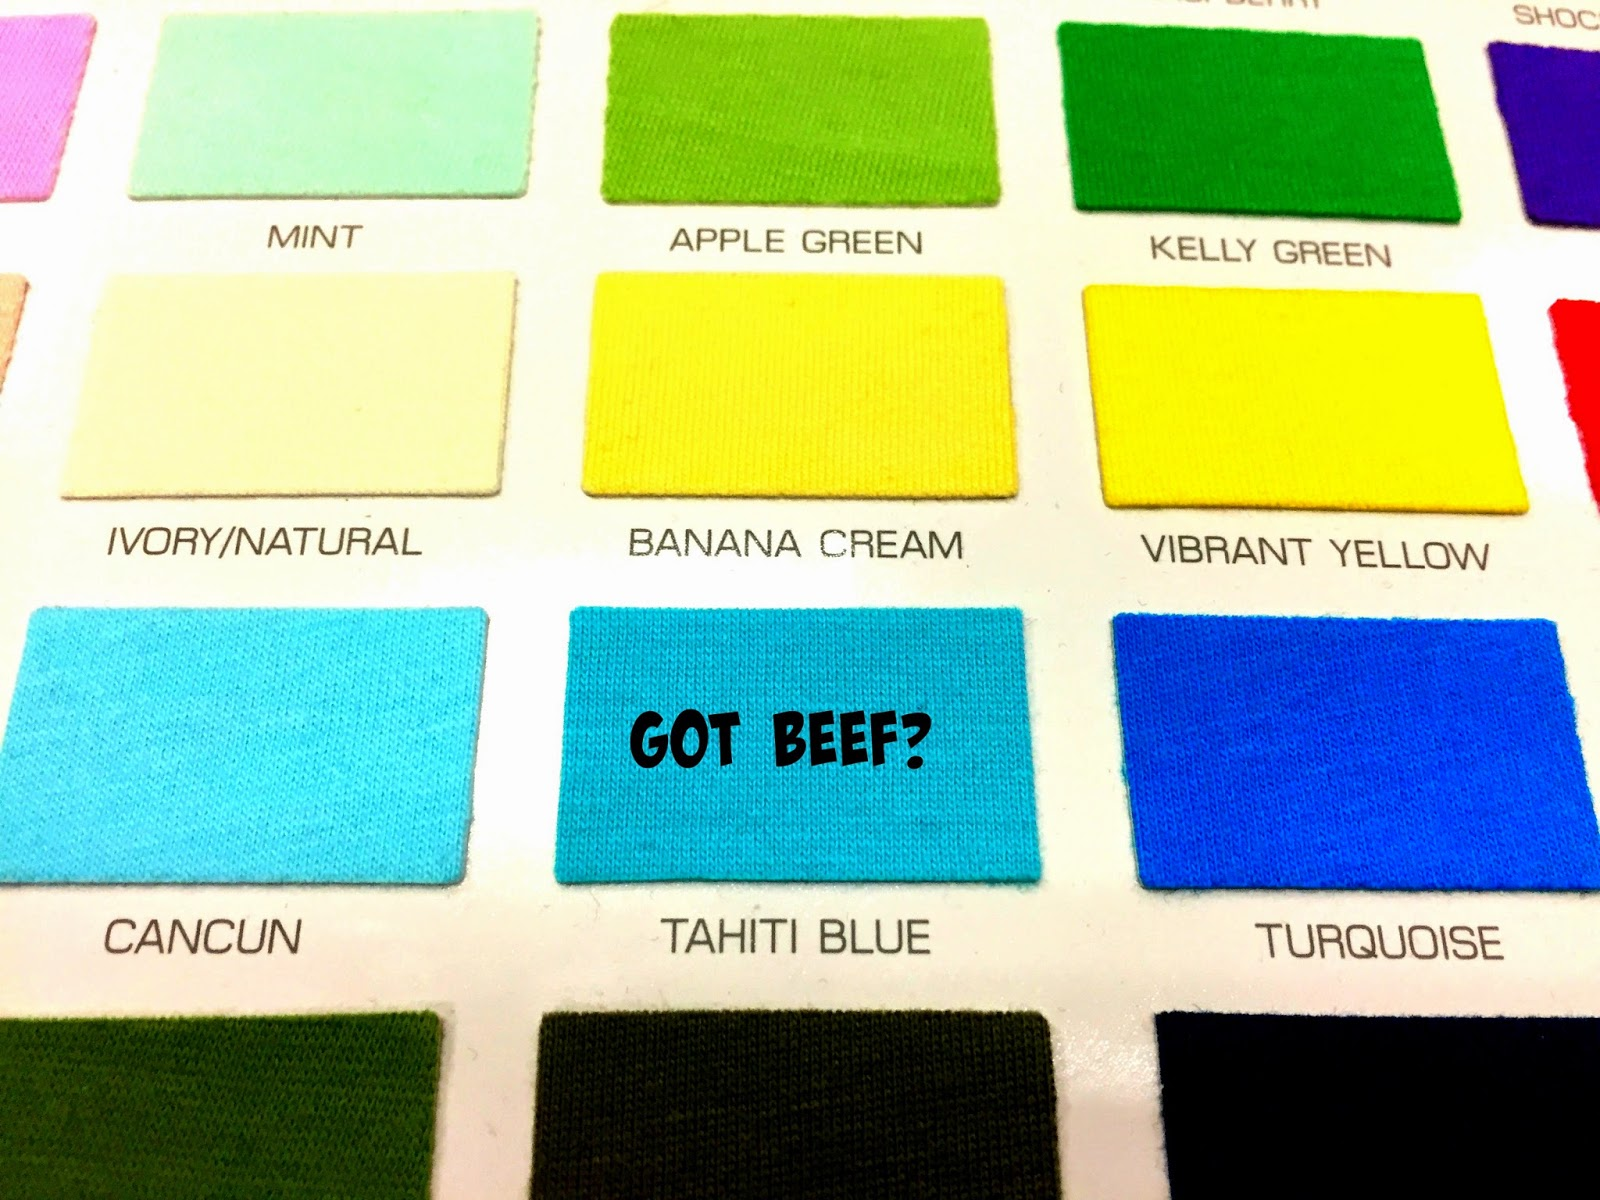 got beef swatches